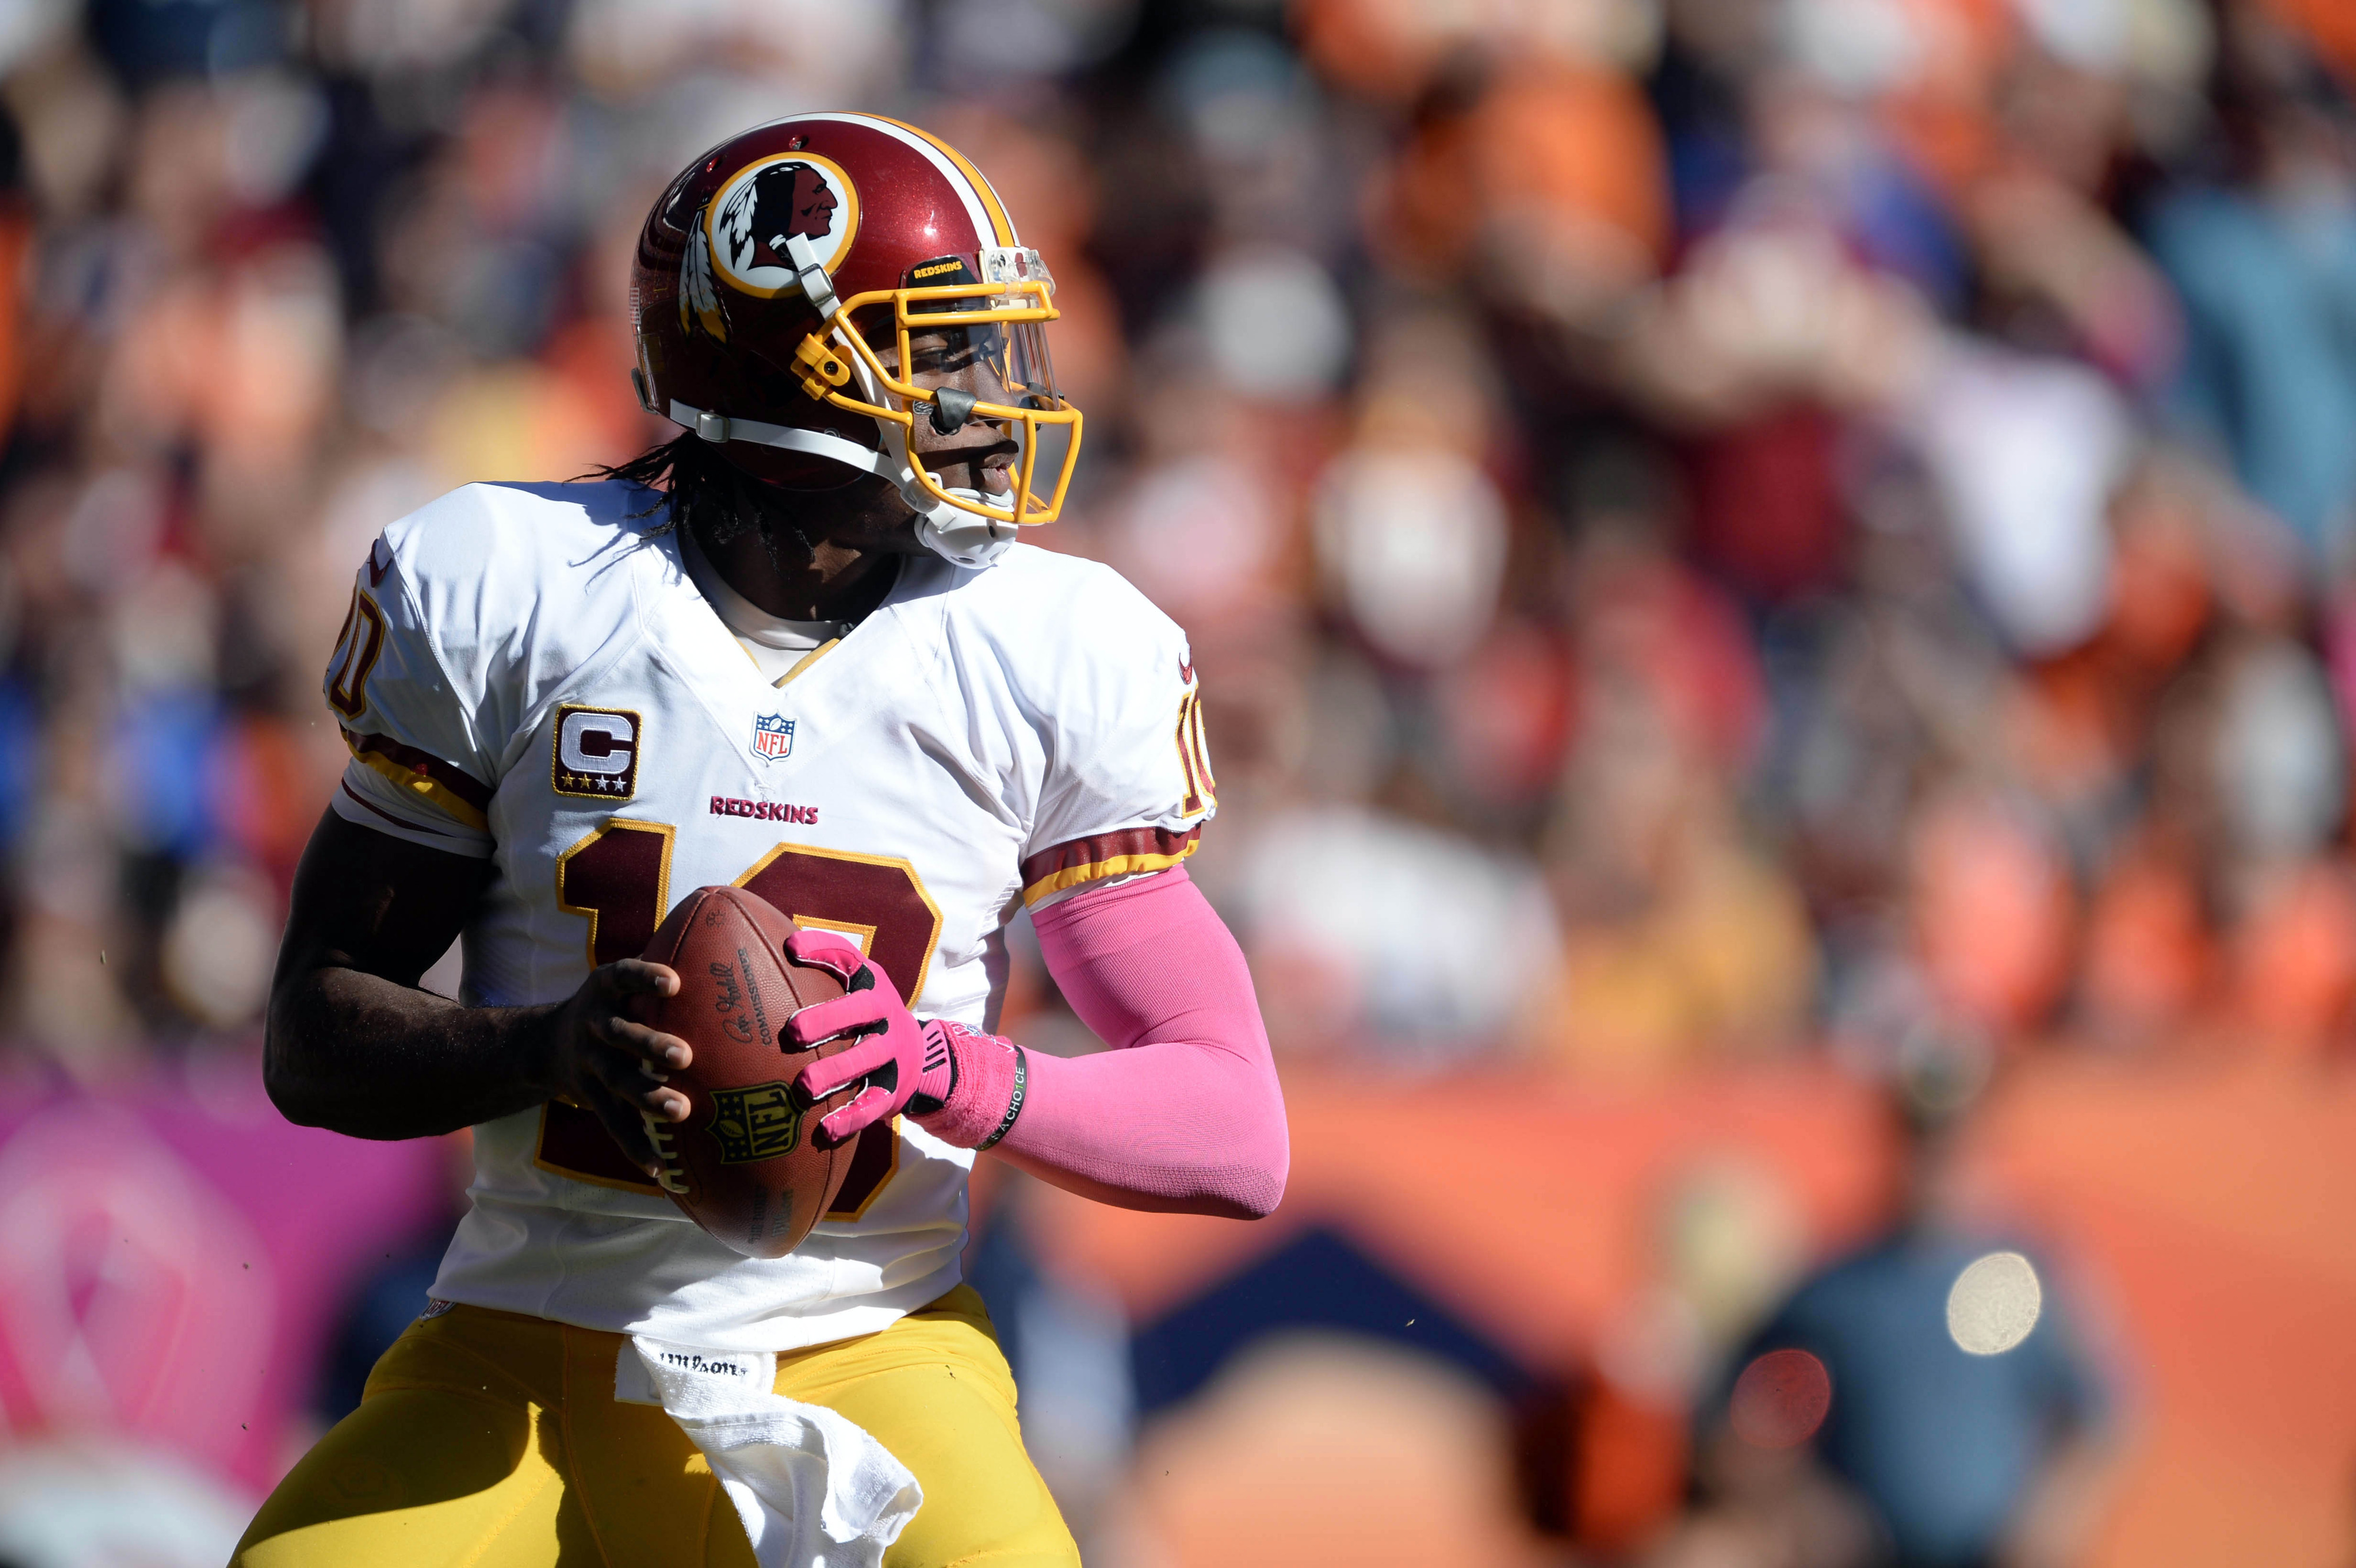 Redskins, Texans highlight teams that could go from worst to first next season